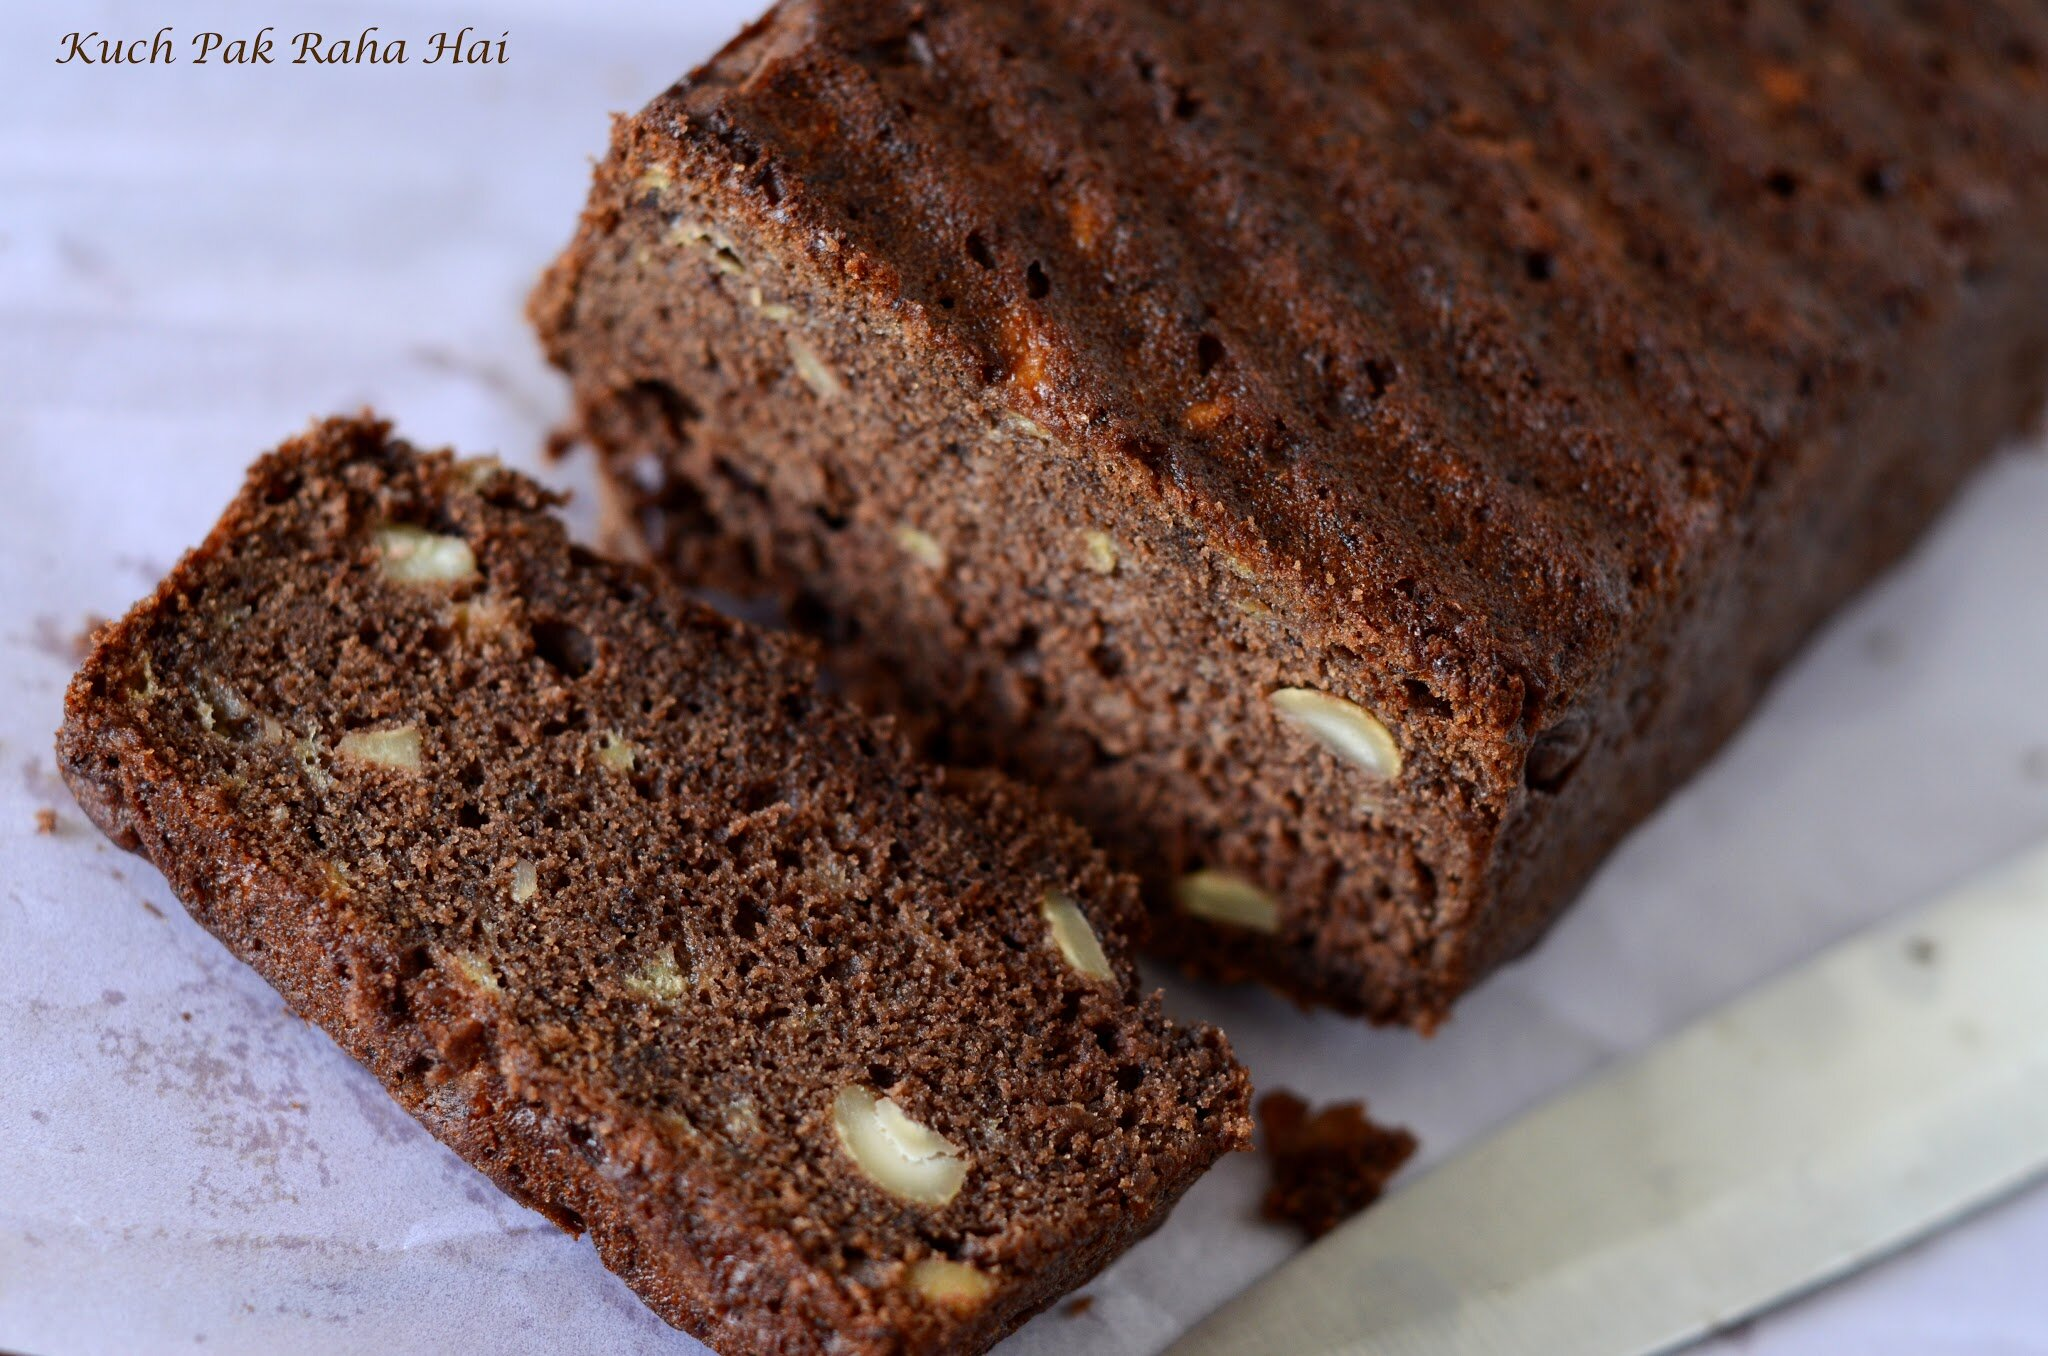 Vegan eggless healthy banana bread recipe with whole wheat flour